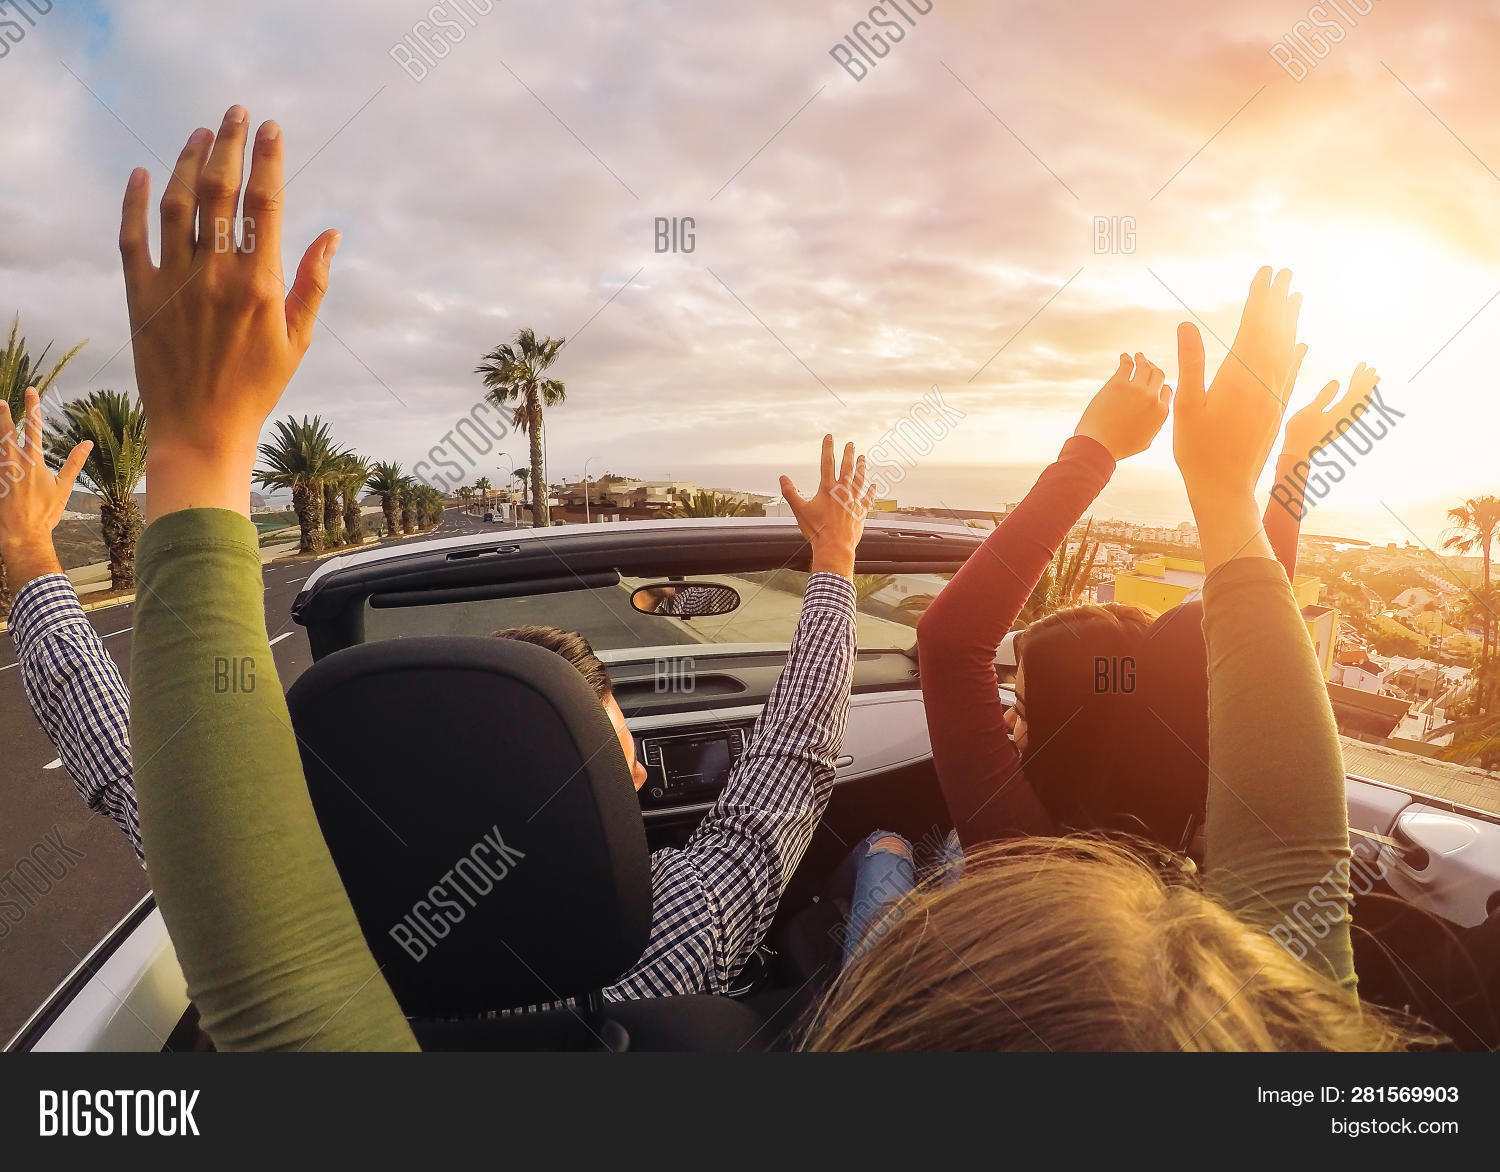 adult,angeles,auto,cabrio,cabriolet,california,car,celebrate,celebration,cheerful,convertible,dancing,driving,enjoying,friends,friendship,fun,girls,group,hands,happy,having,holiday,ibiza,journey,laughing,lifestyle,los,luxury,man,miami,millennials,music,outdoor,palm,party,people,rich,road,roadtrip,smiling,summer,sunset,travel,trip,vacation,vehicle,wanderlust,women,young